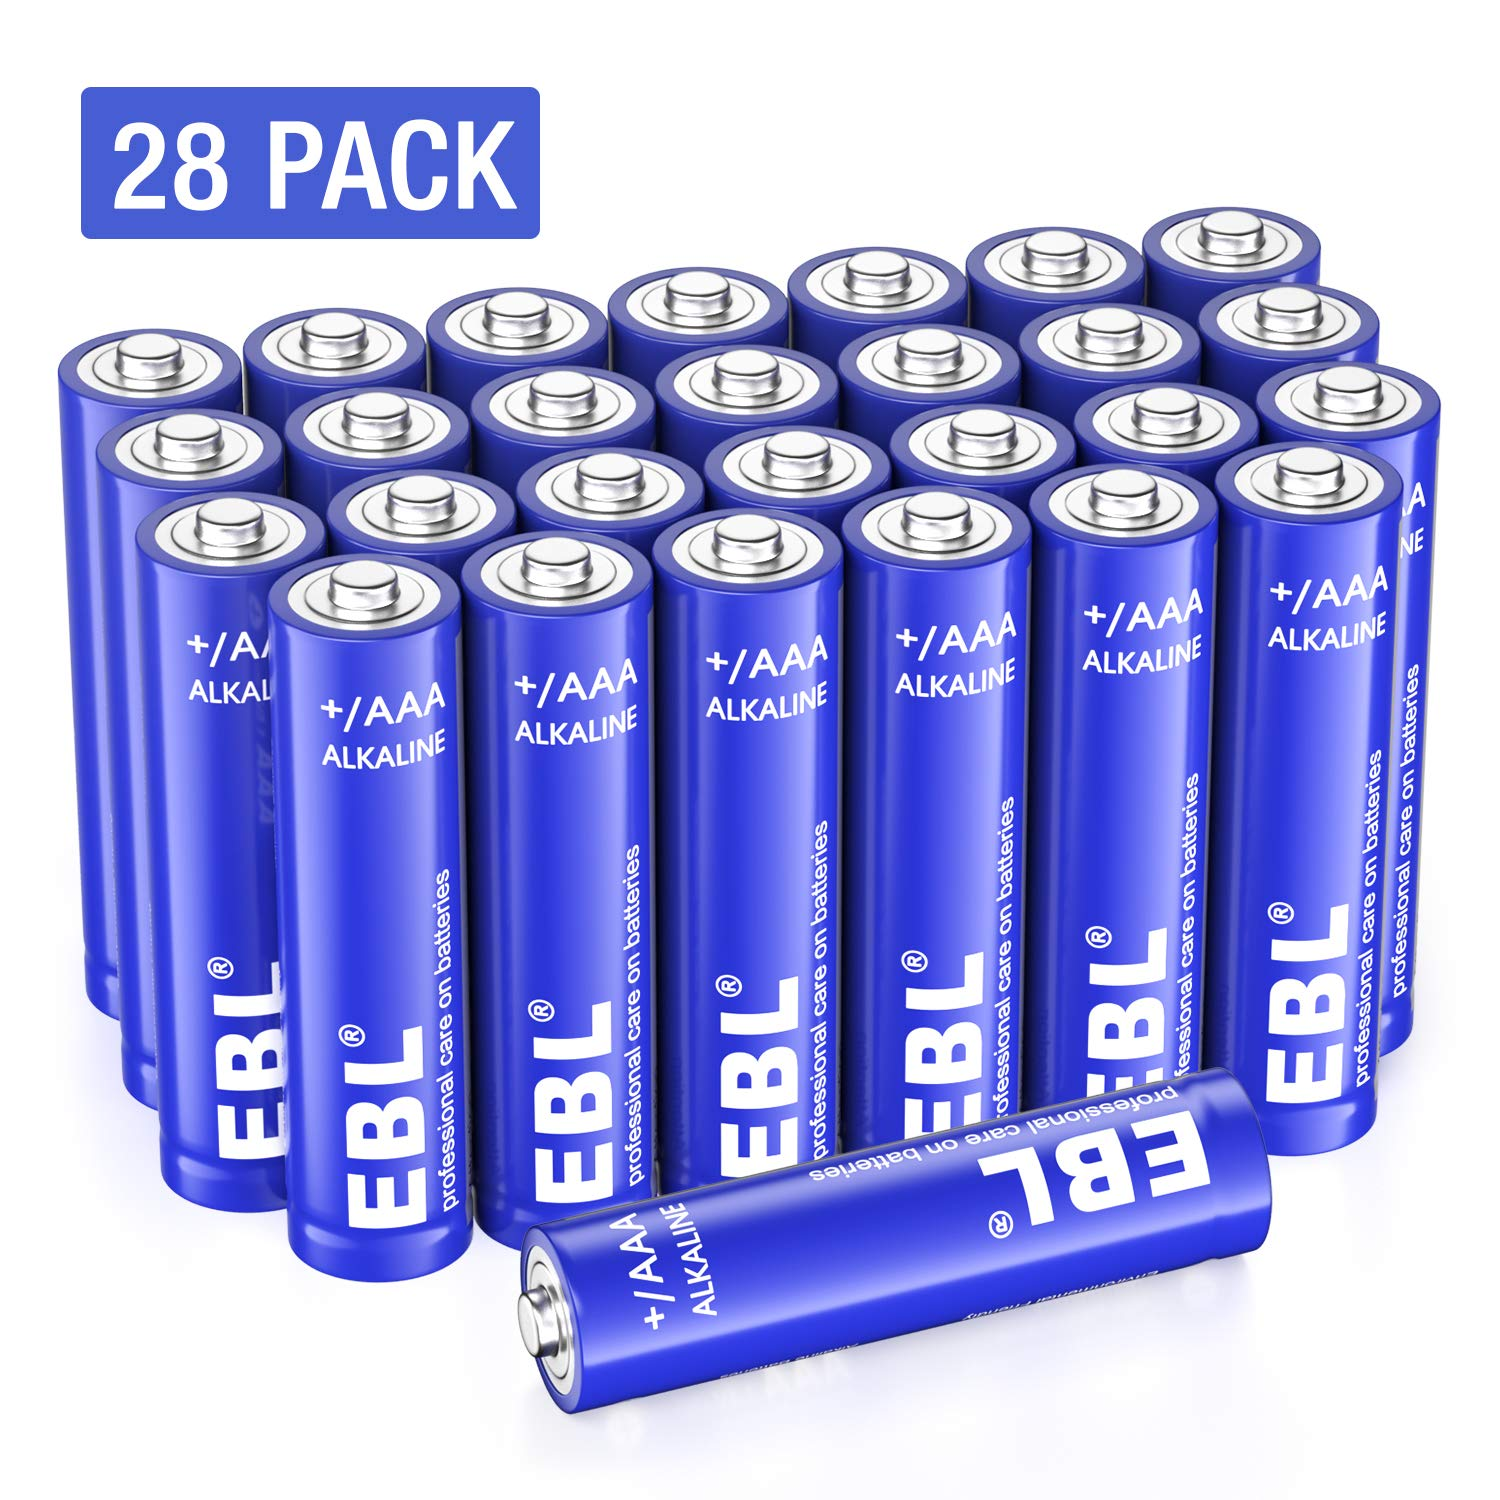 EBL AAA Batteries (28 Count), Triple A Alkaline Battery with 10-Year Shelf Life, 1.5V AAA Alkaline Super Batteries, Long-Lasting, Anti-leakage & Anti-circuit Design